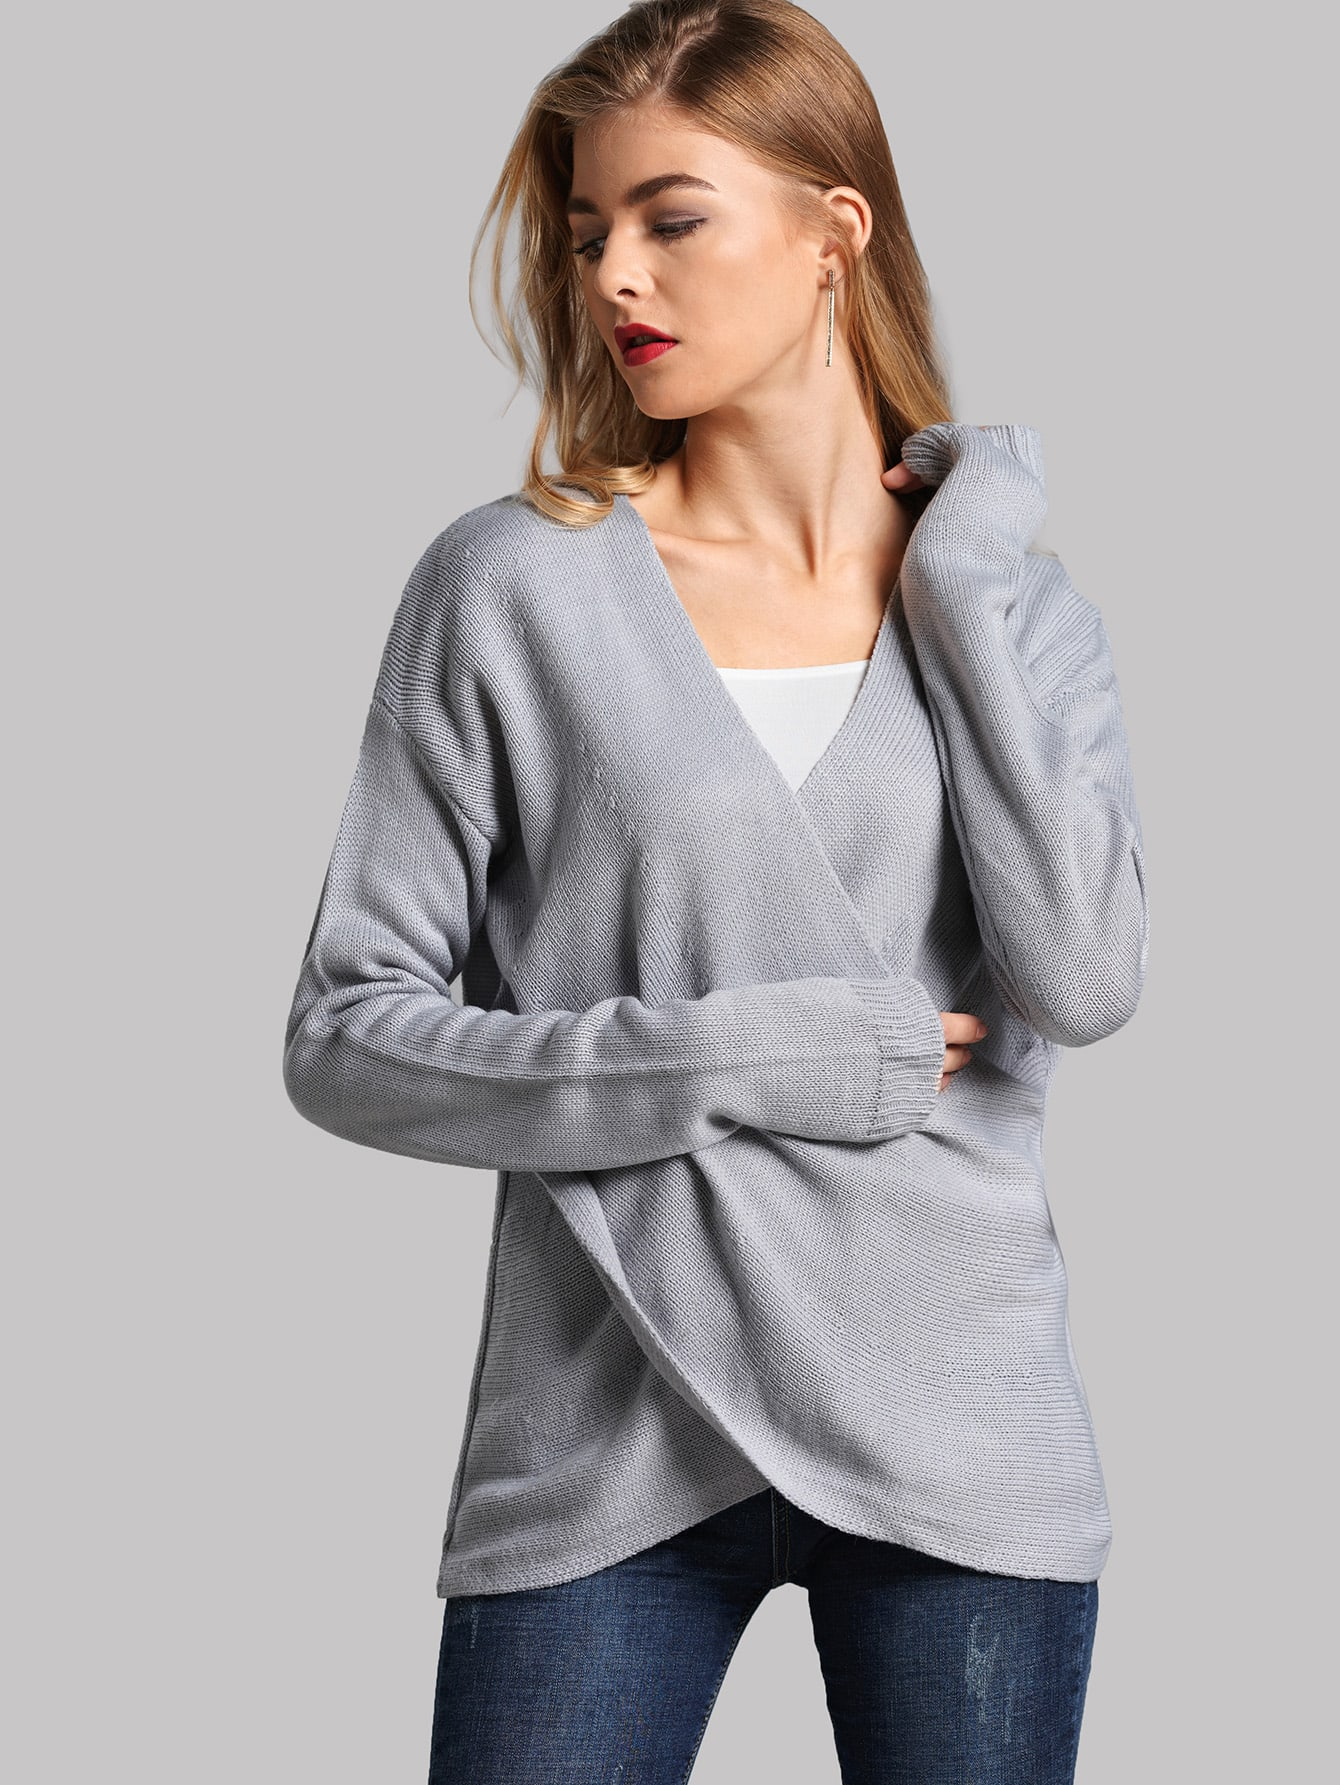 Asymmetrical Hem Crossover Sweater Asymmetrical Hem Crossover Sweater